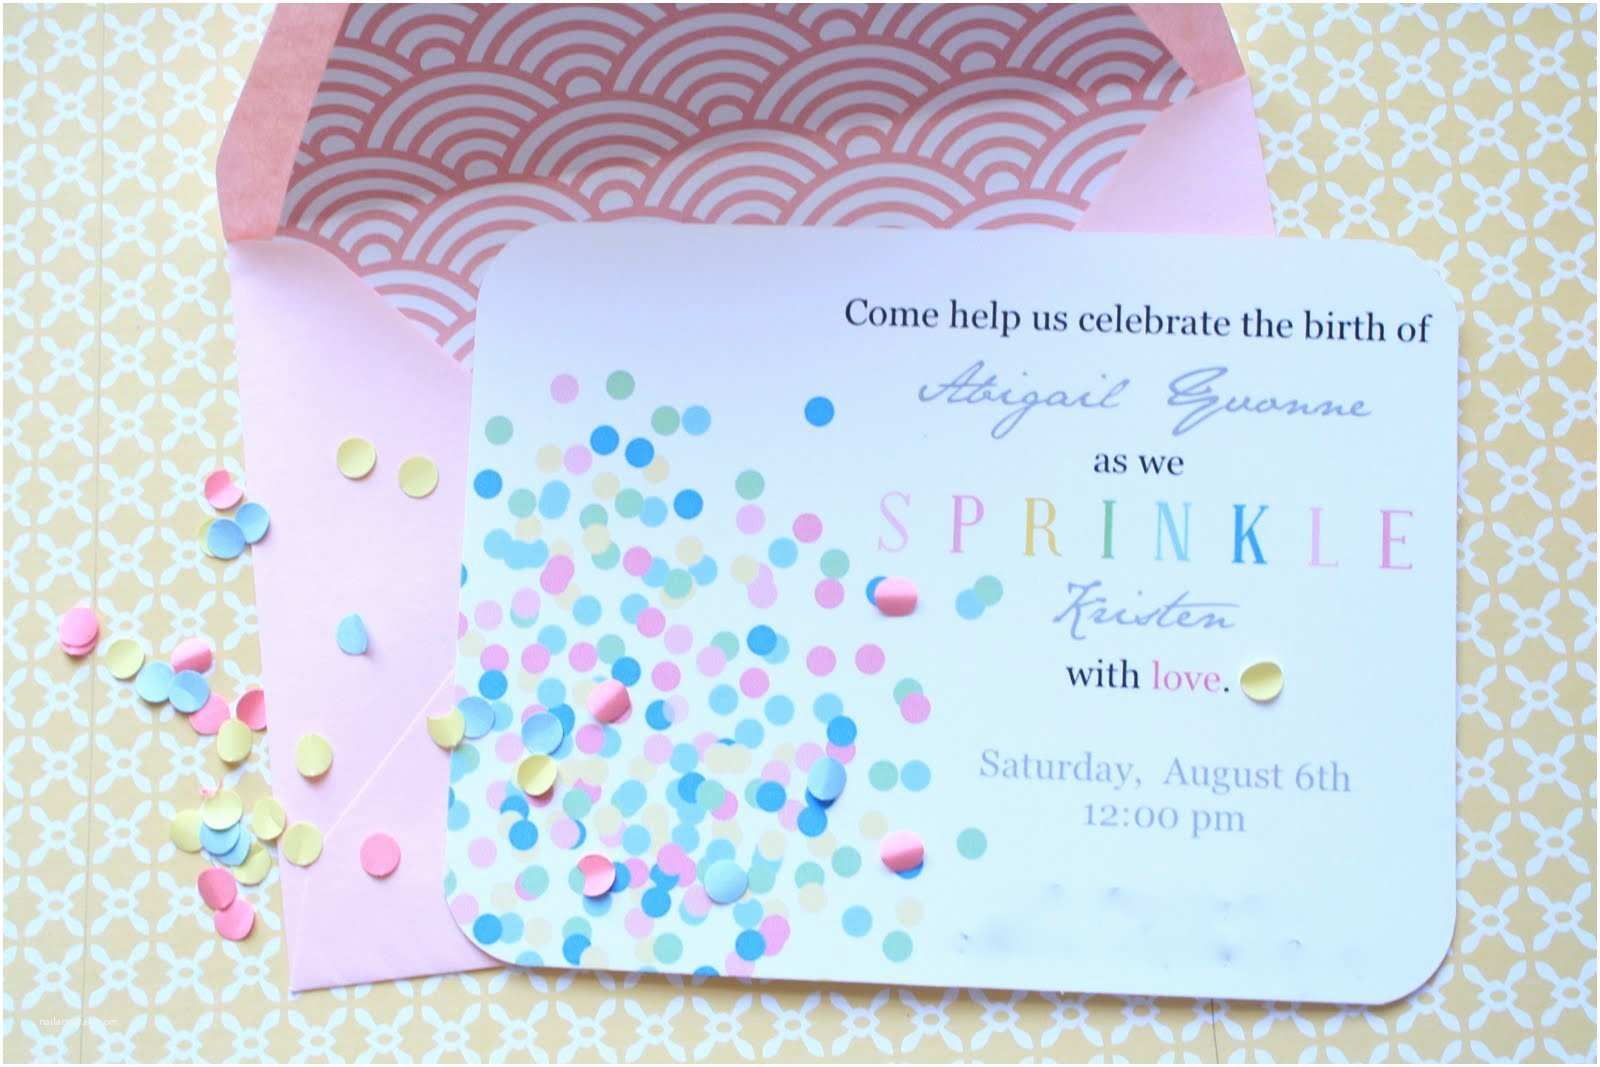 Baby Shower Invitations Ideas How to Make Baby Shower Invitations